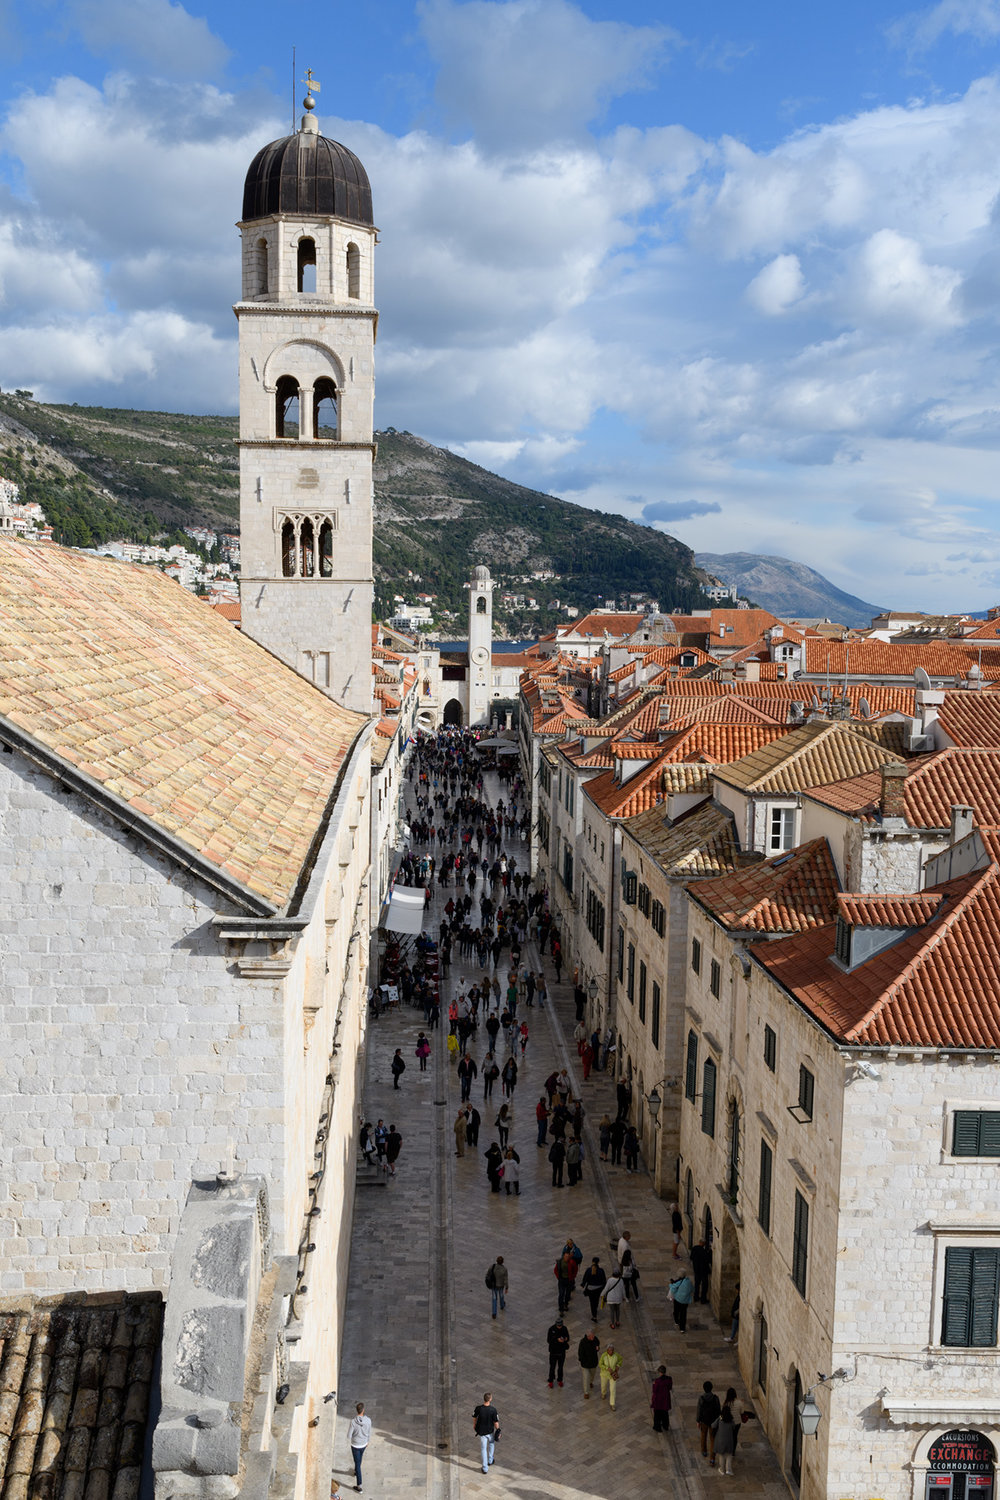 The Stradun from above on the walls, with views of the Sponza Palace in the background and the near tower of the Franciscan Monastary in the foreground.